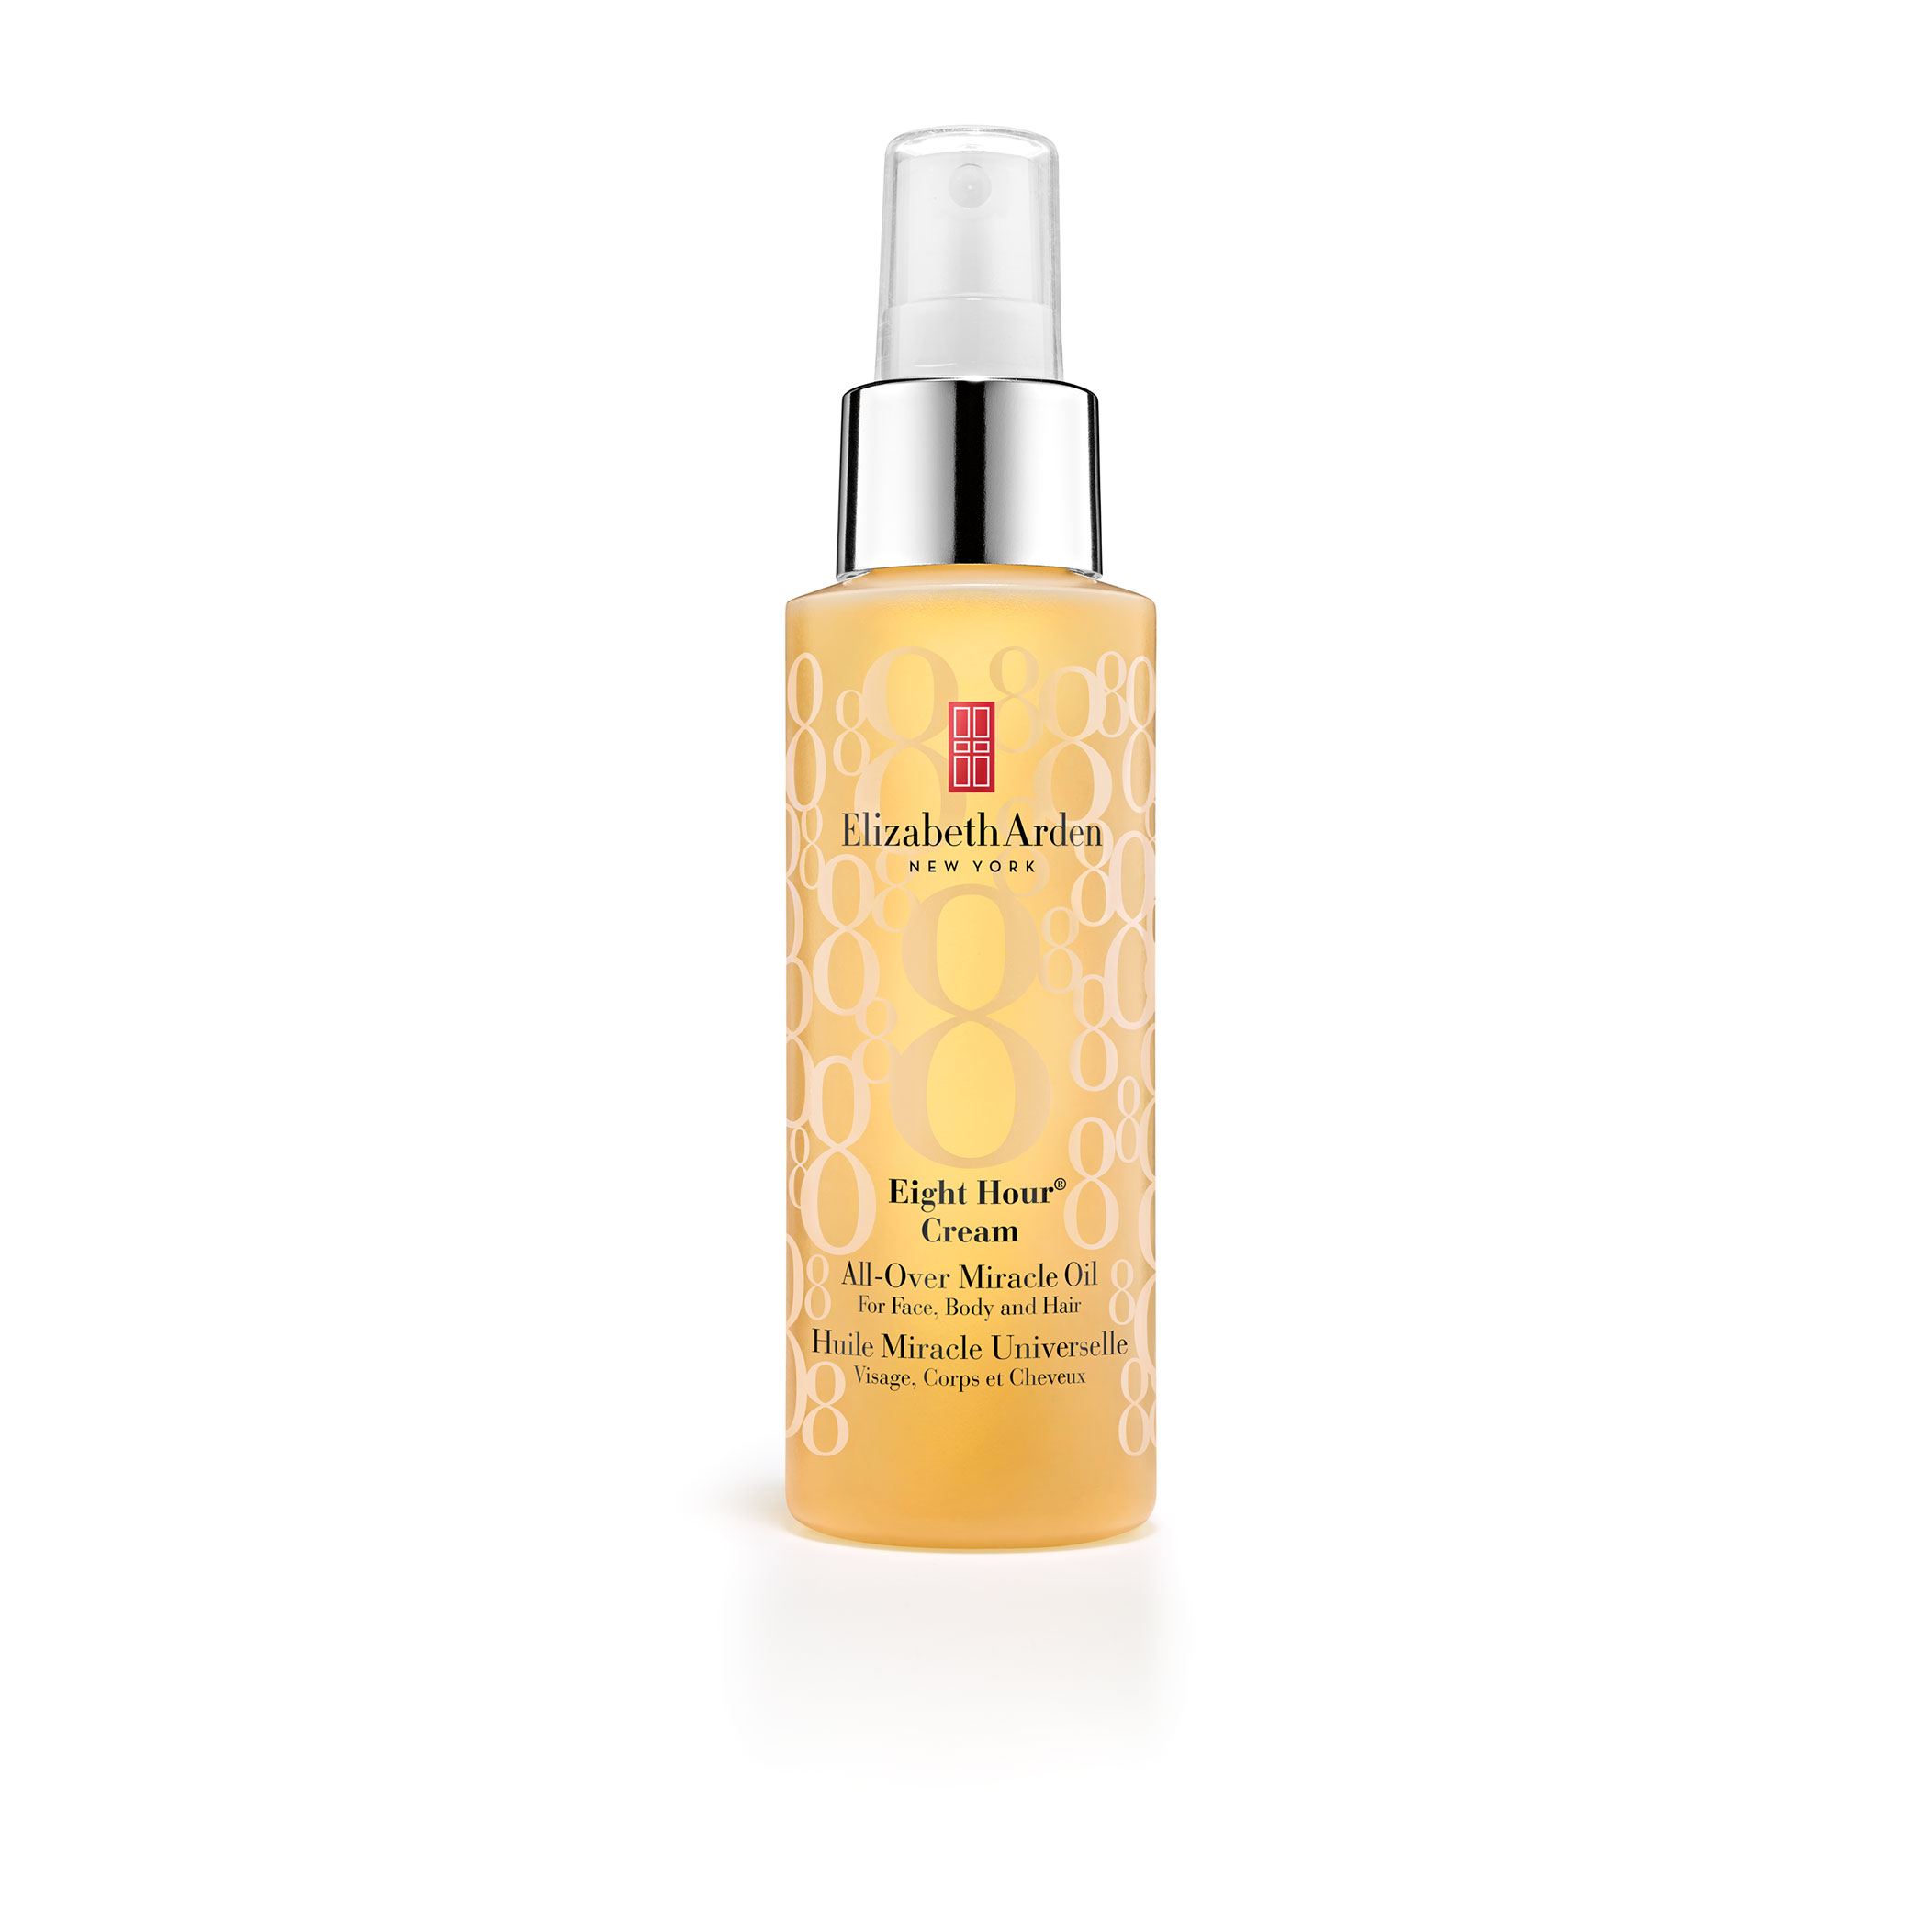 Eight Hour Cream All Over Miracle Oil With Tsubaki Body Lotion Sp 100ml